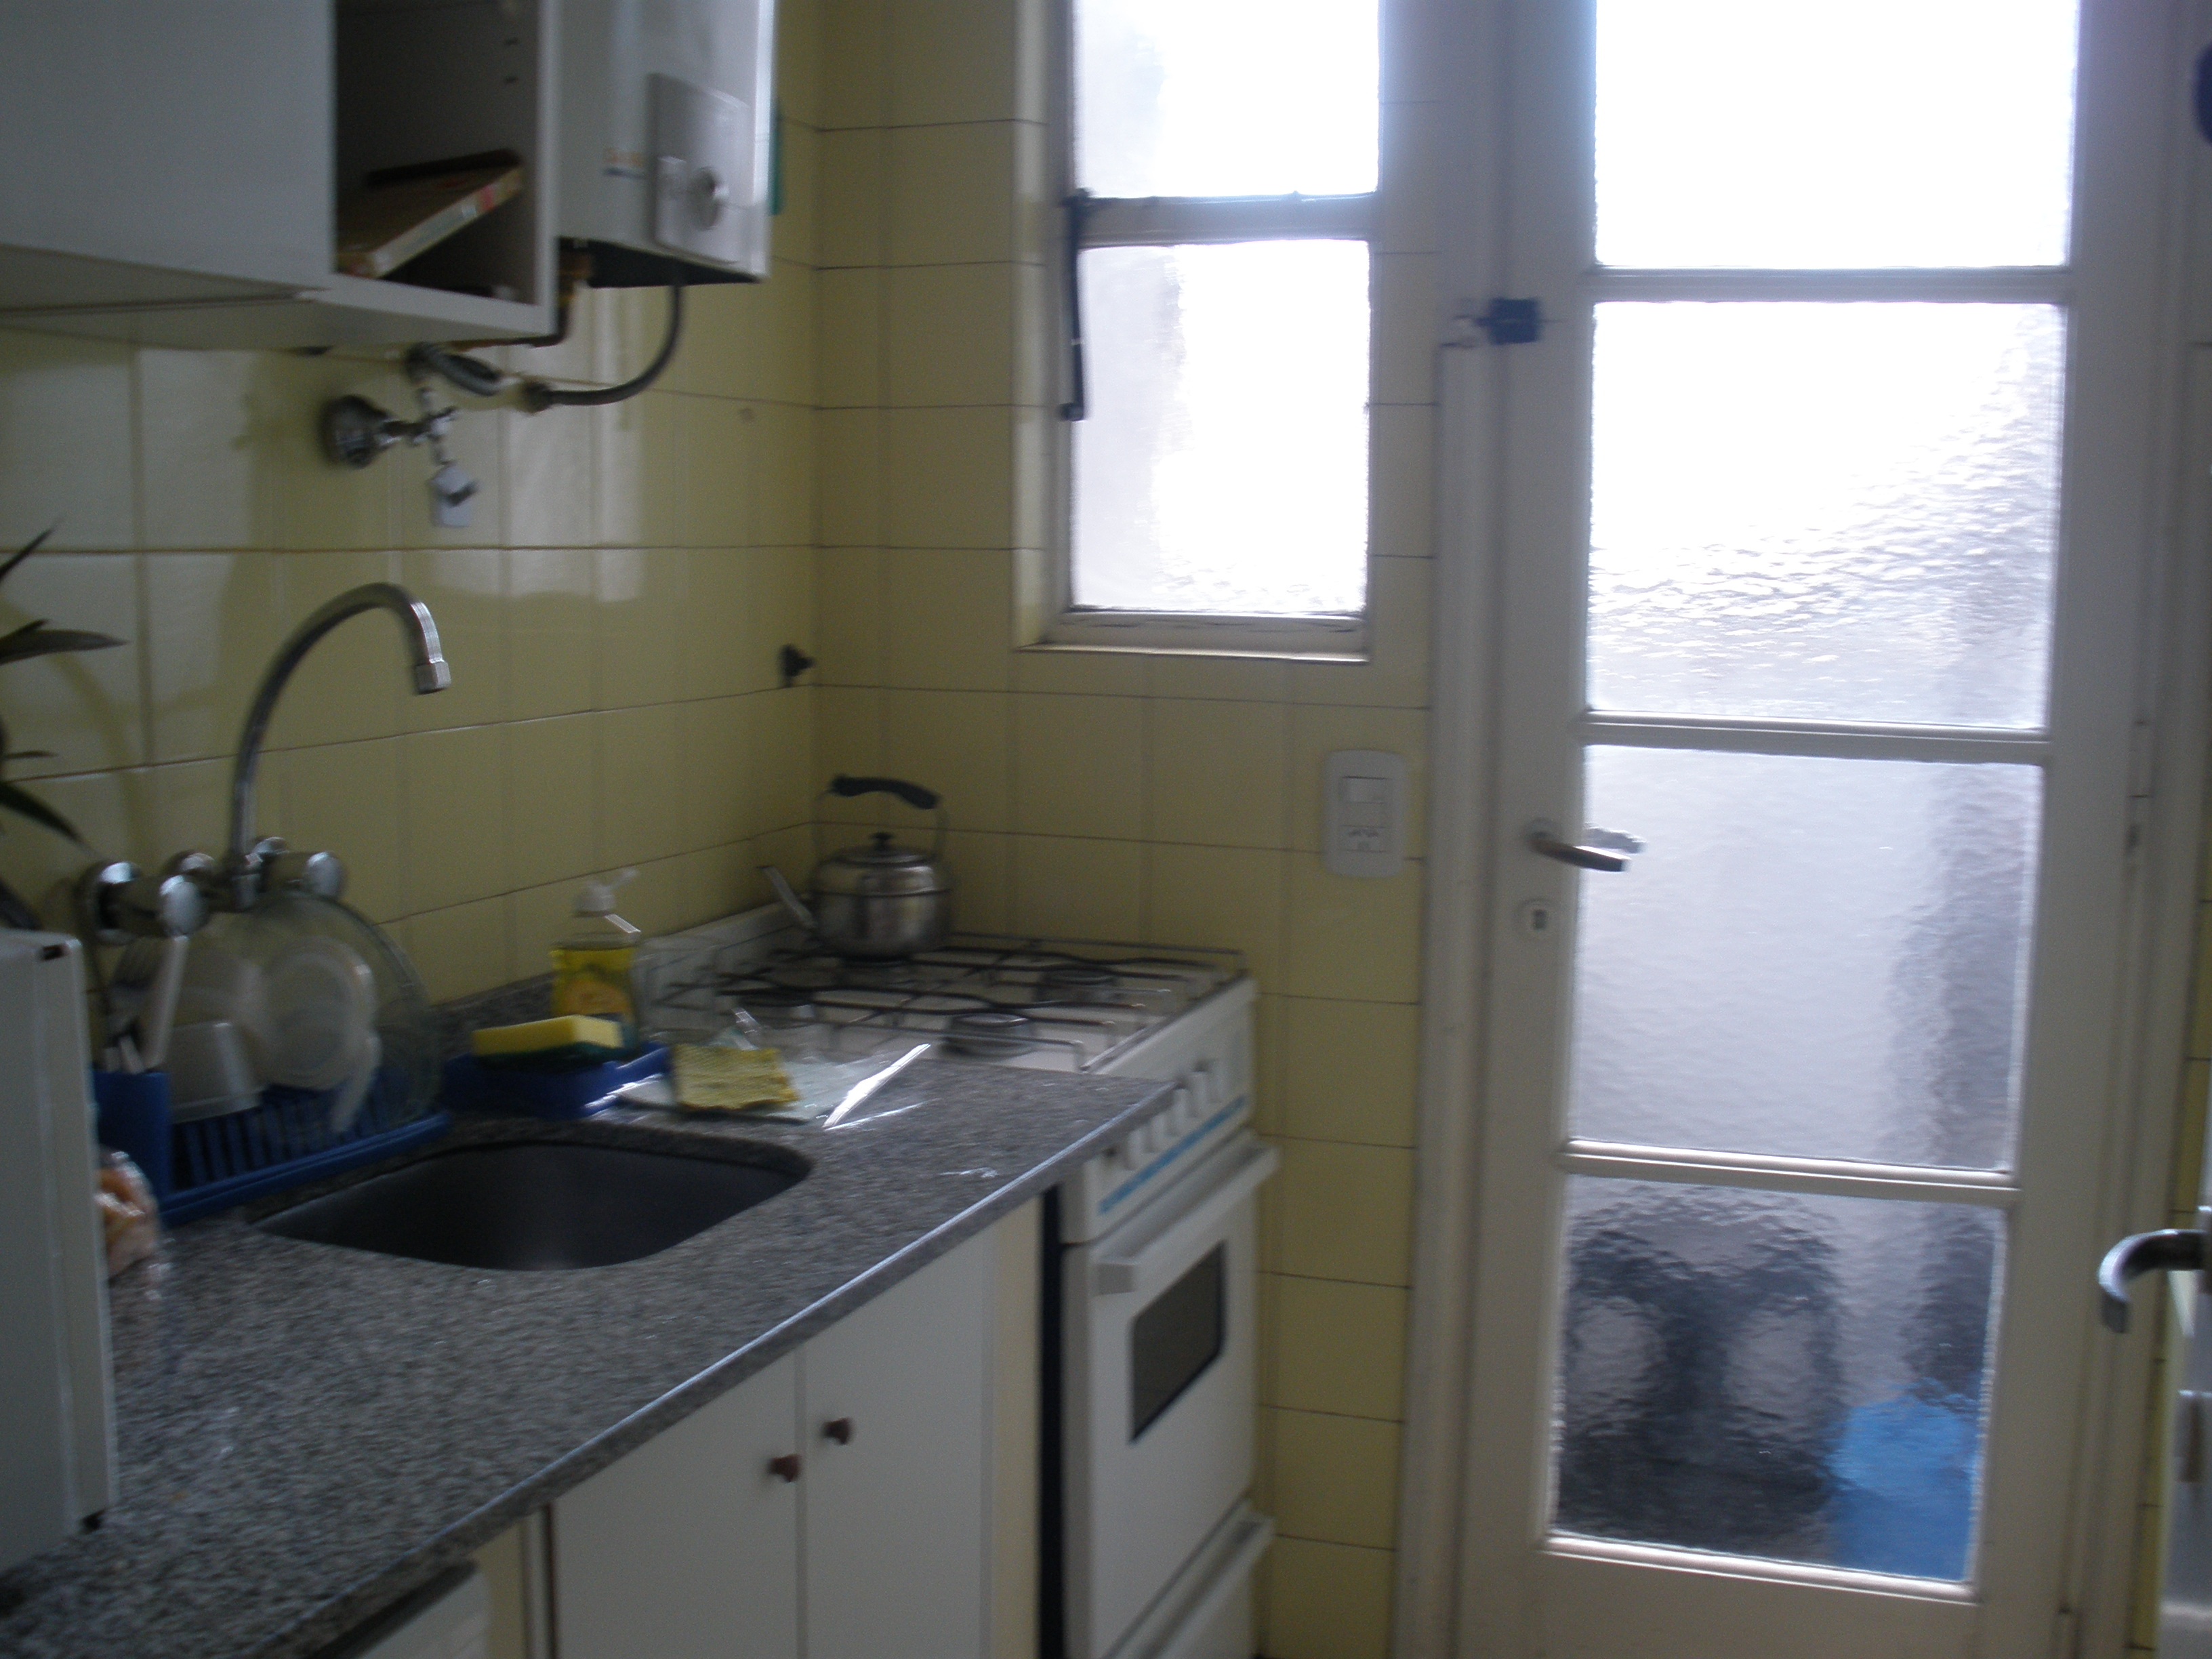 Our very own kitchen